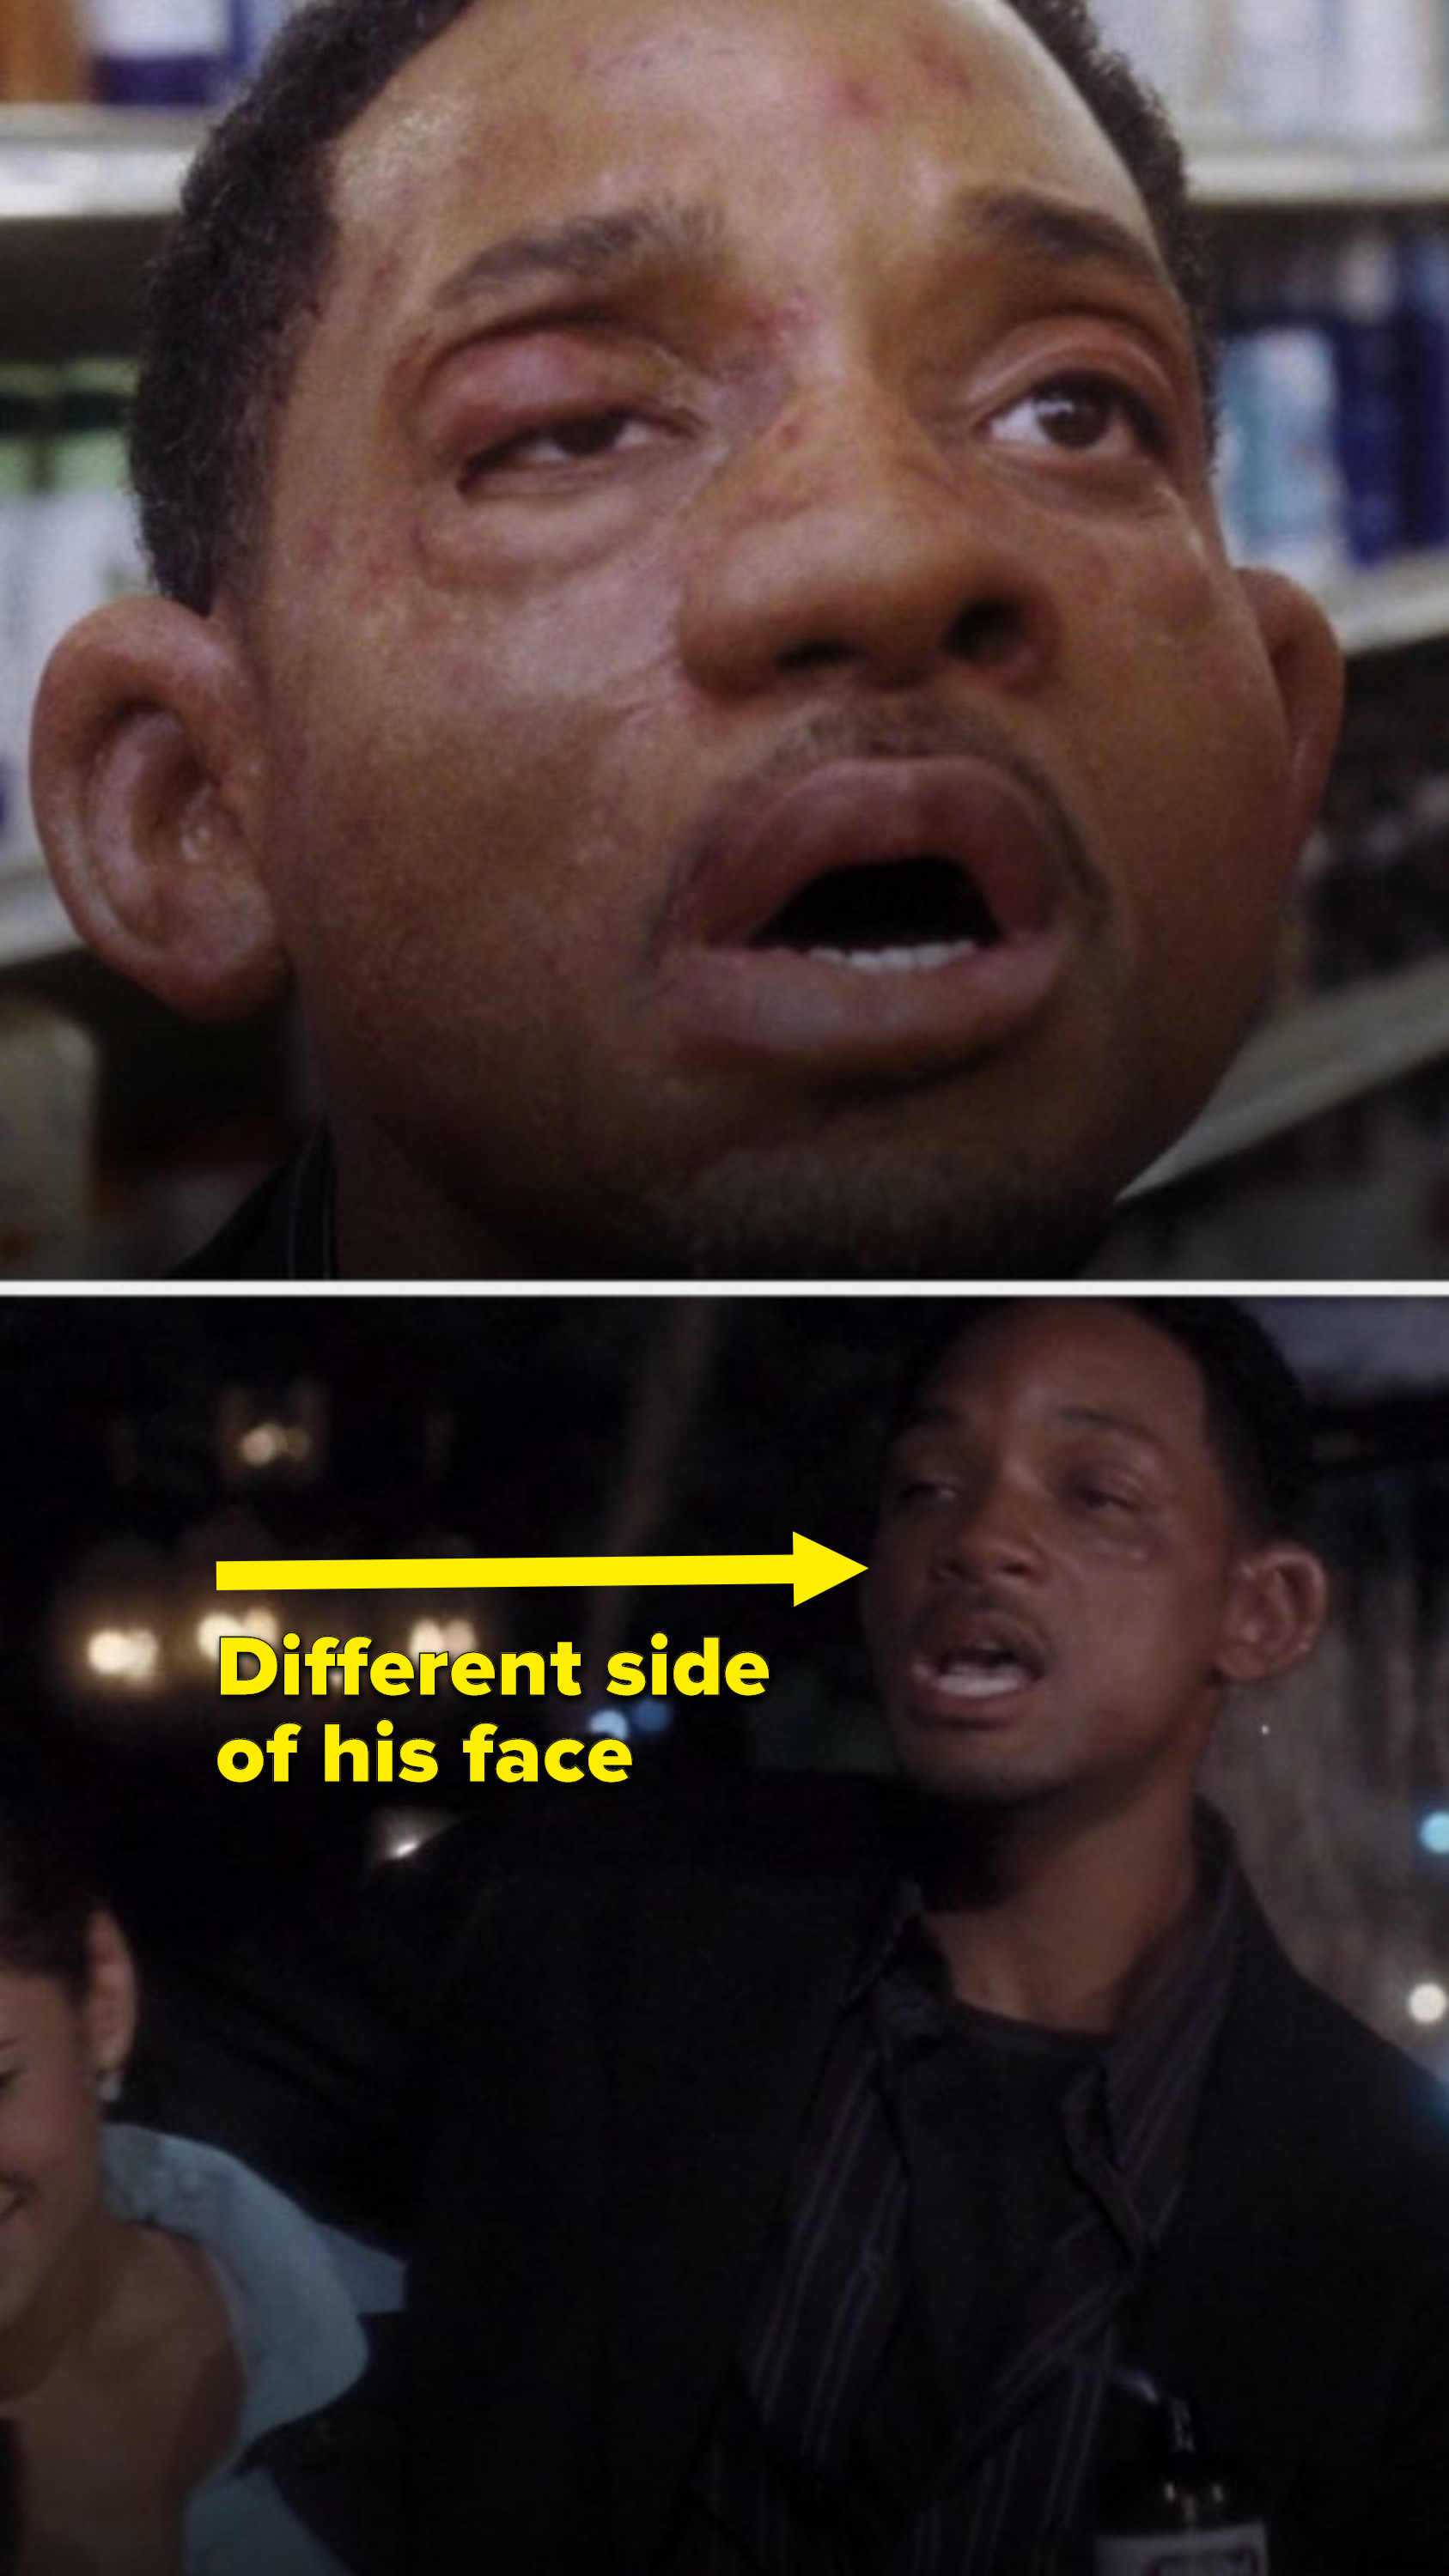 The right side of Hitch's face is swollen, but then the left side of his face is the side recovering